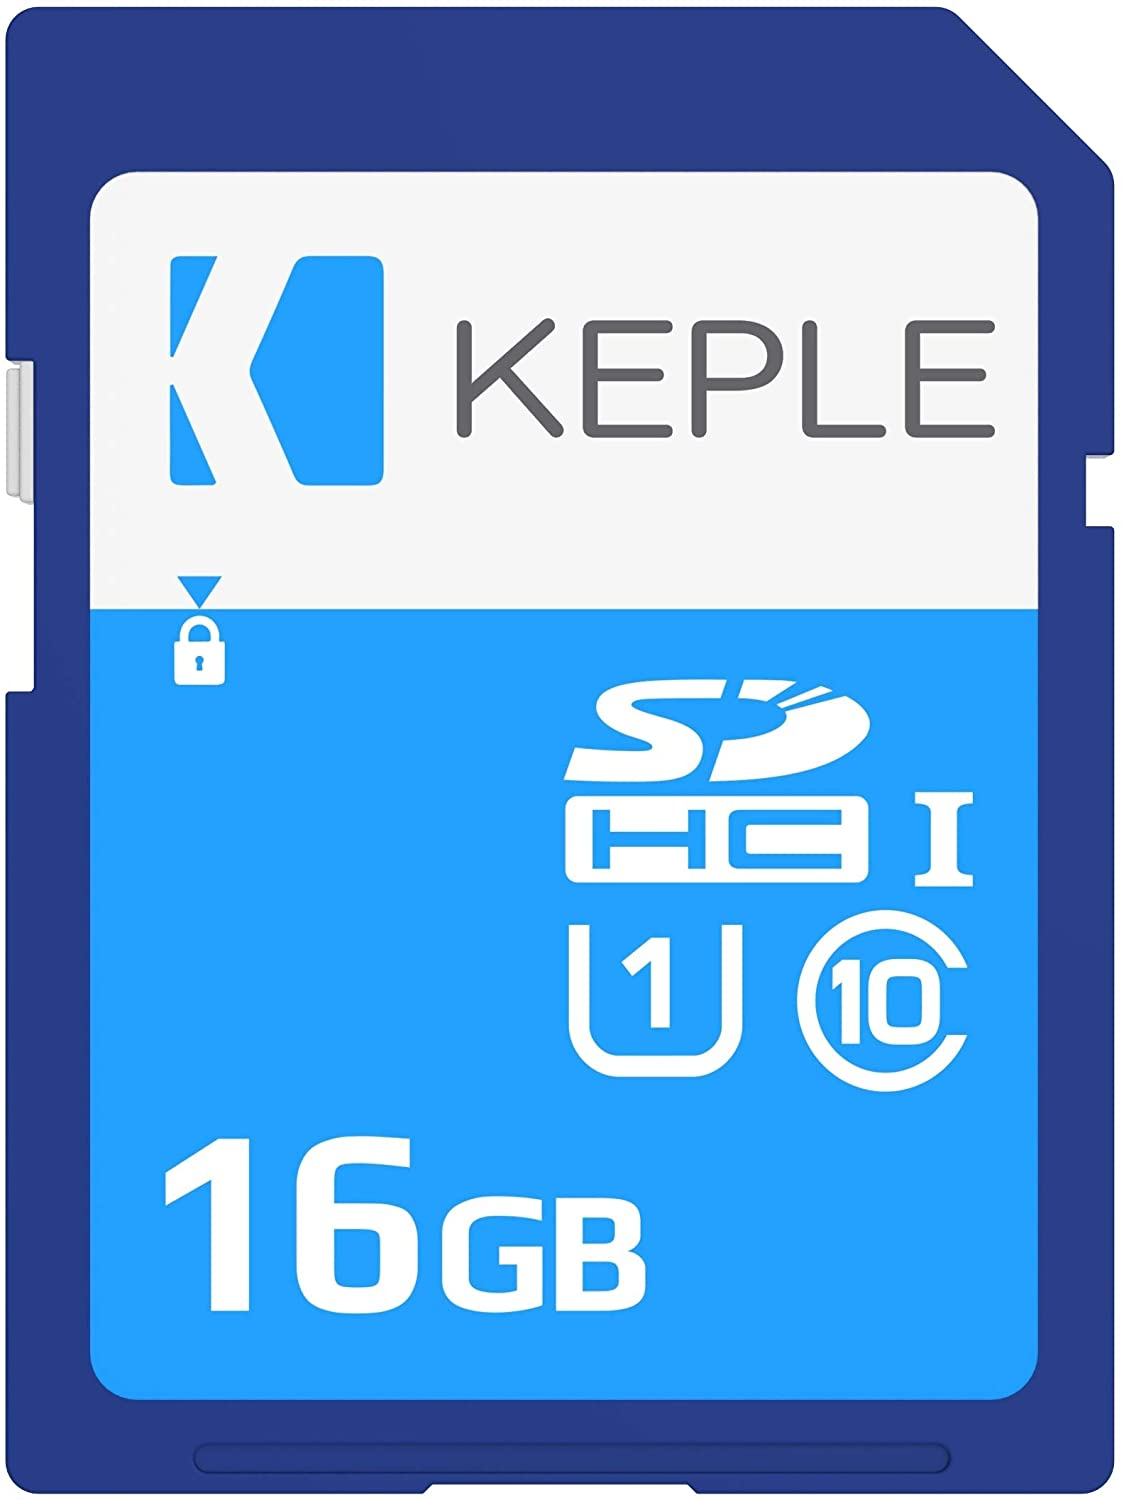 16GB SD Memory Card | SD Card Compatible with Nikon Coolpix Series S30, S31, S32, S33, S2900, S3300, S3700, S4300, S6300, S6800, S6900, S6400, S7000, S800C, S9300, S9700, S9900 SLR Camera | 16 GB